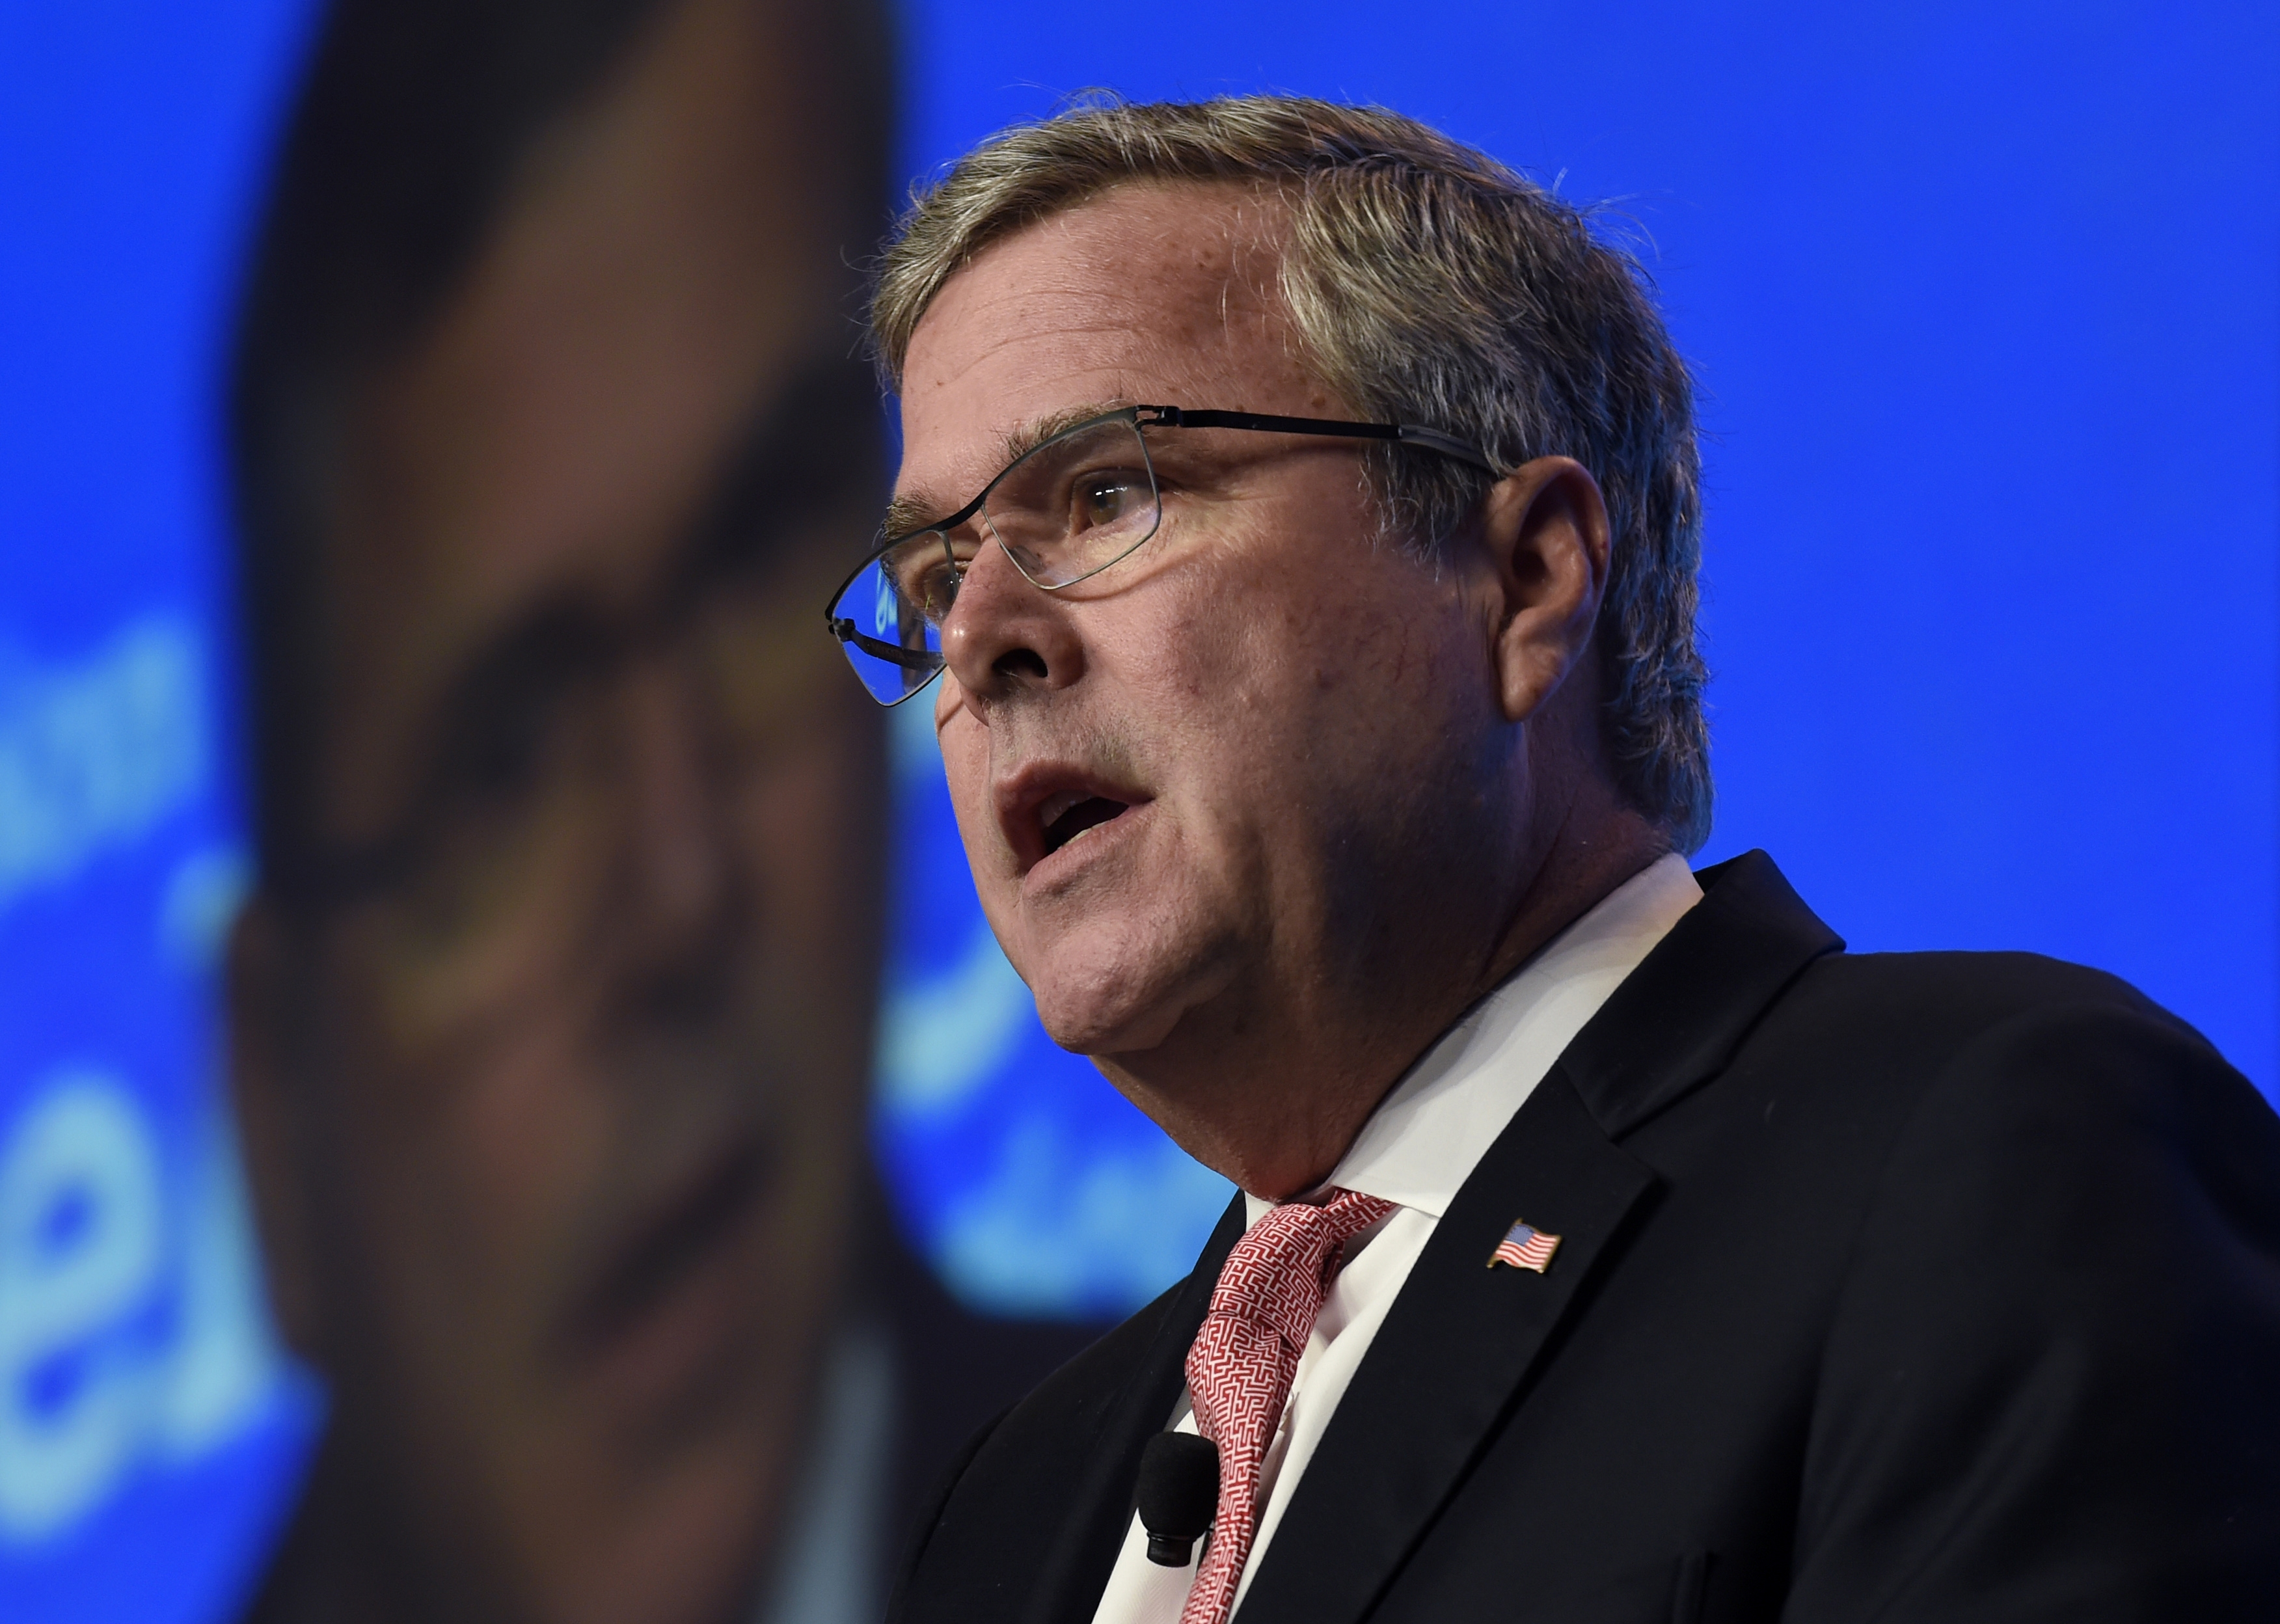 FILE - In this Nov. 20, 2014 file photo, former Florida Gov. Jeb Bush speaks in Washington. Thereís a whole year of campaigning, positioning and politicking to go before the next campaign for president kicks off with the Iowa Caucus in early 2016. Hereís a look at 10 things to look out for next year that might tell us something about how that campaign to come (which is really already underway) may shake out.  (AP Photo/Susan Walsh, File)